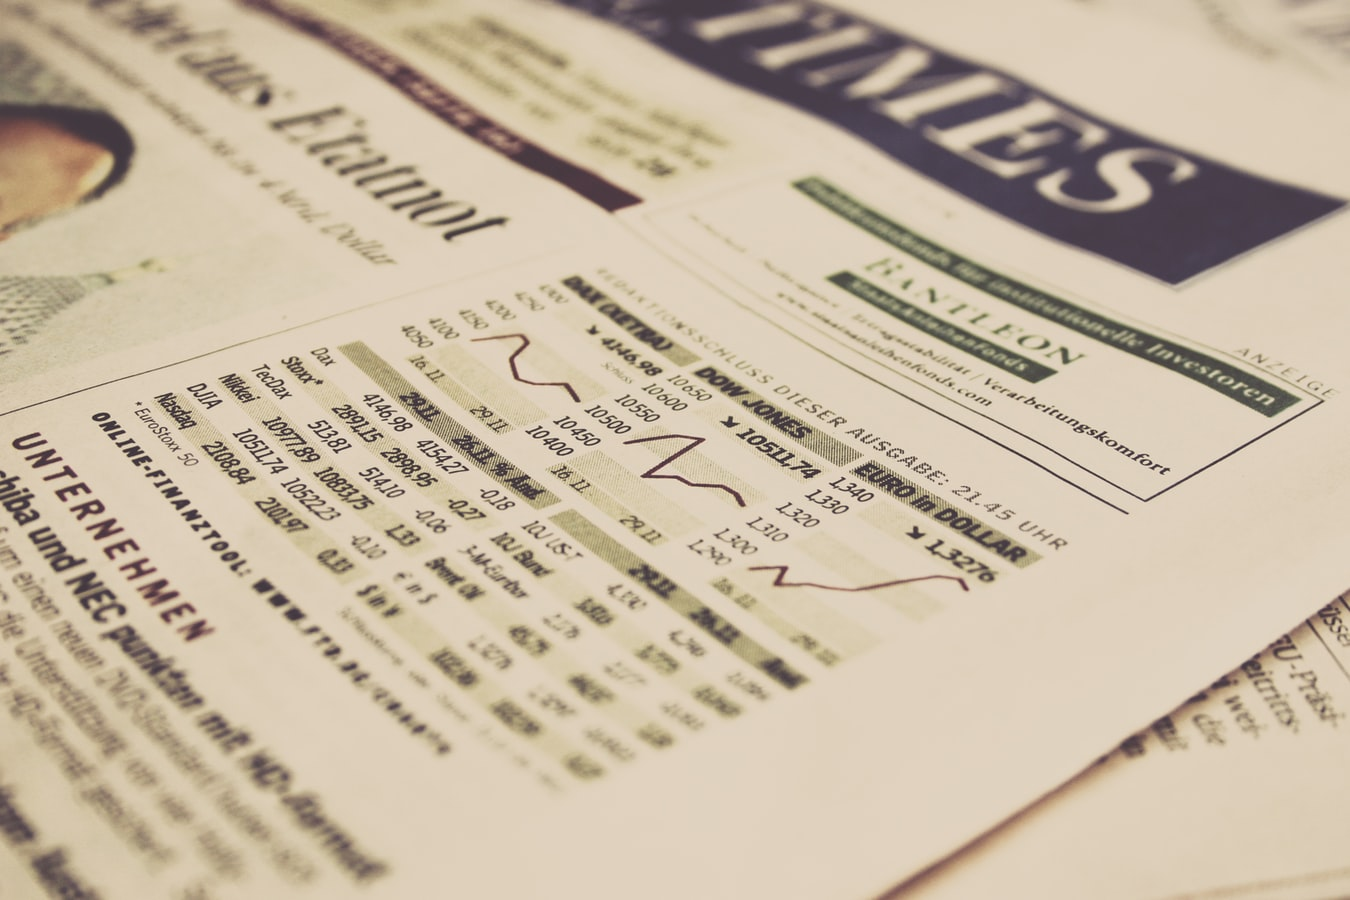 SVMK Inc. Shares Close the Day 13.4% Lower - Daily Wrap